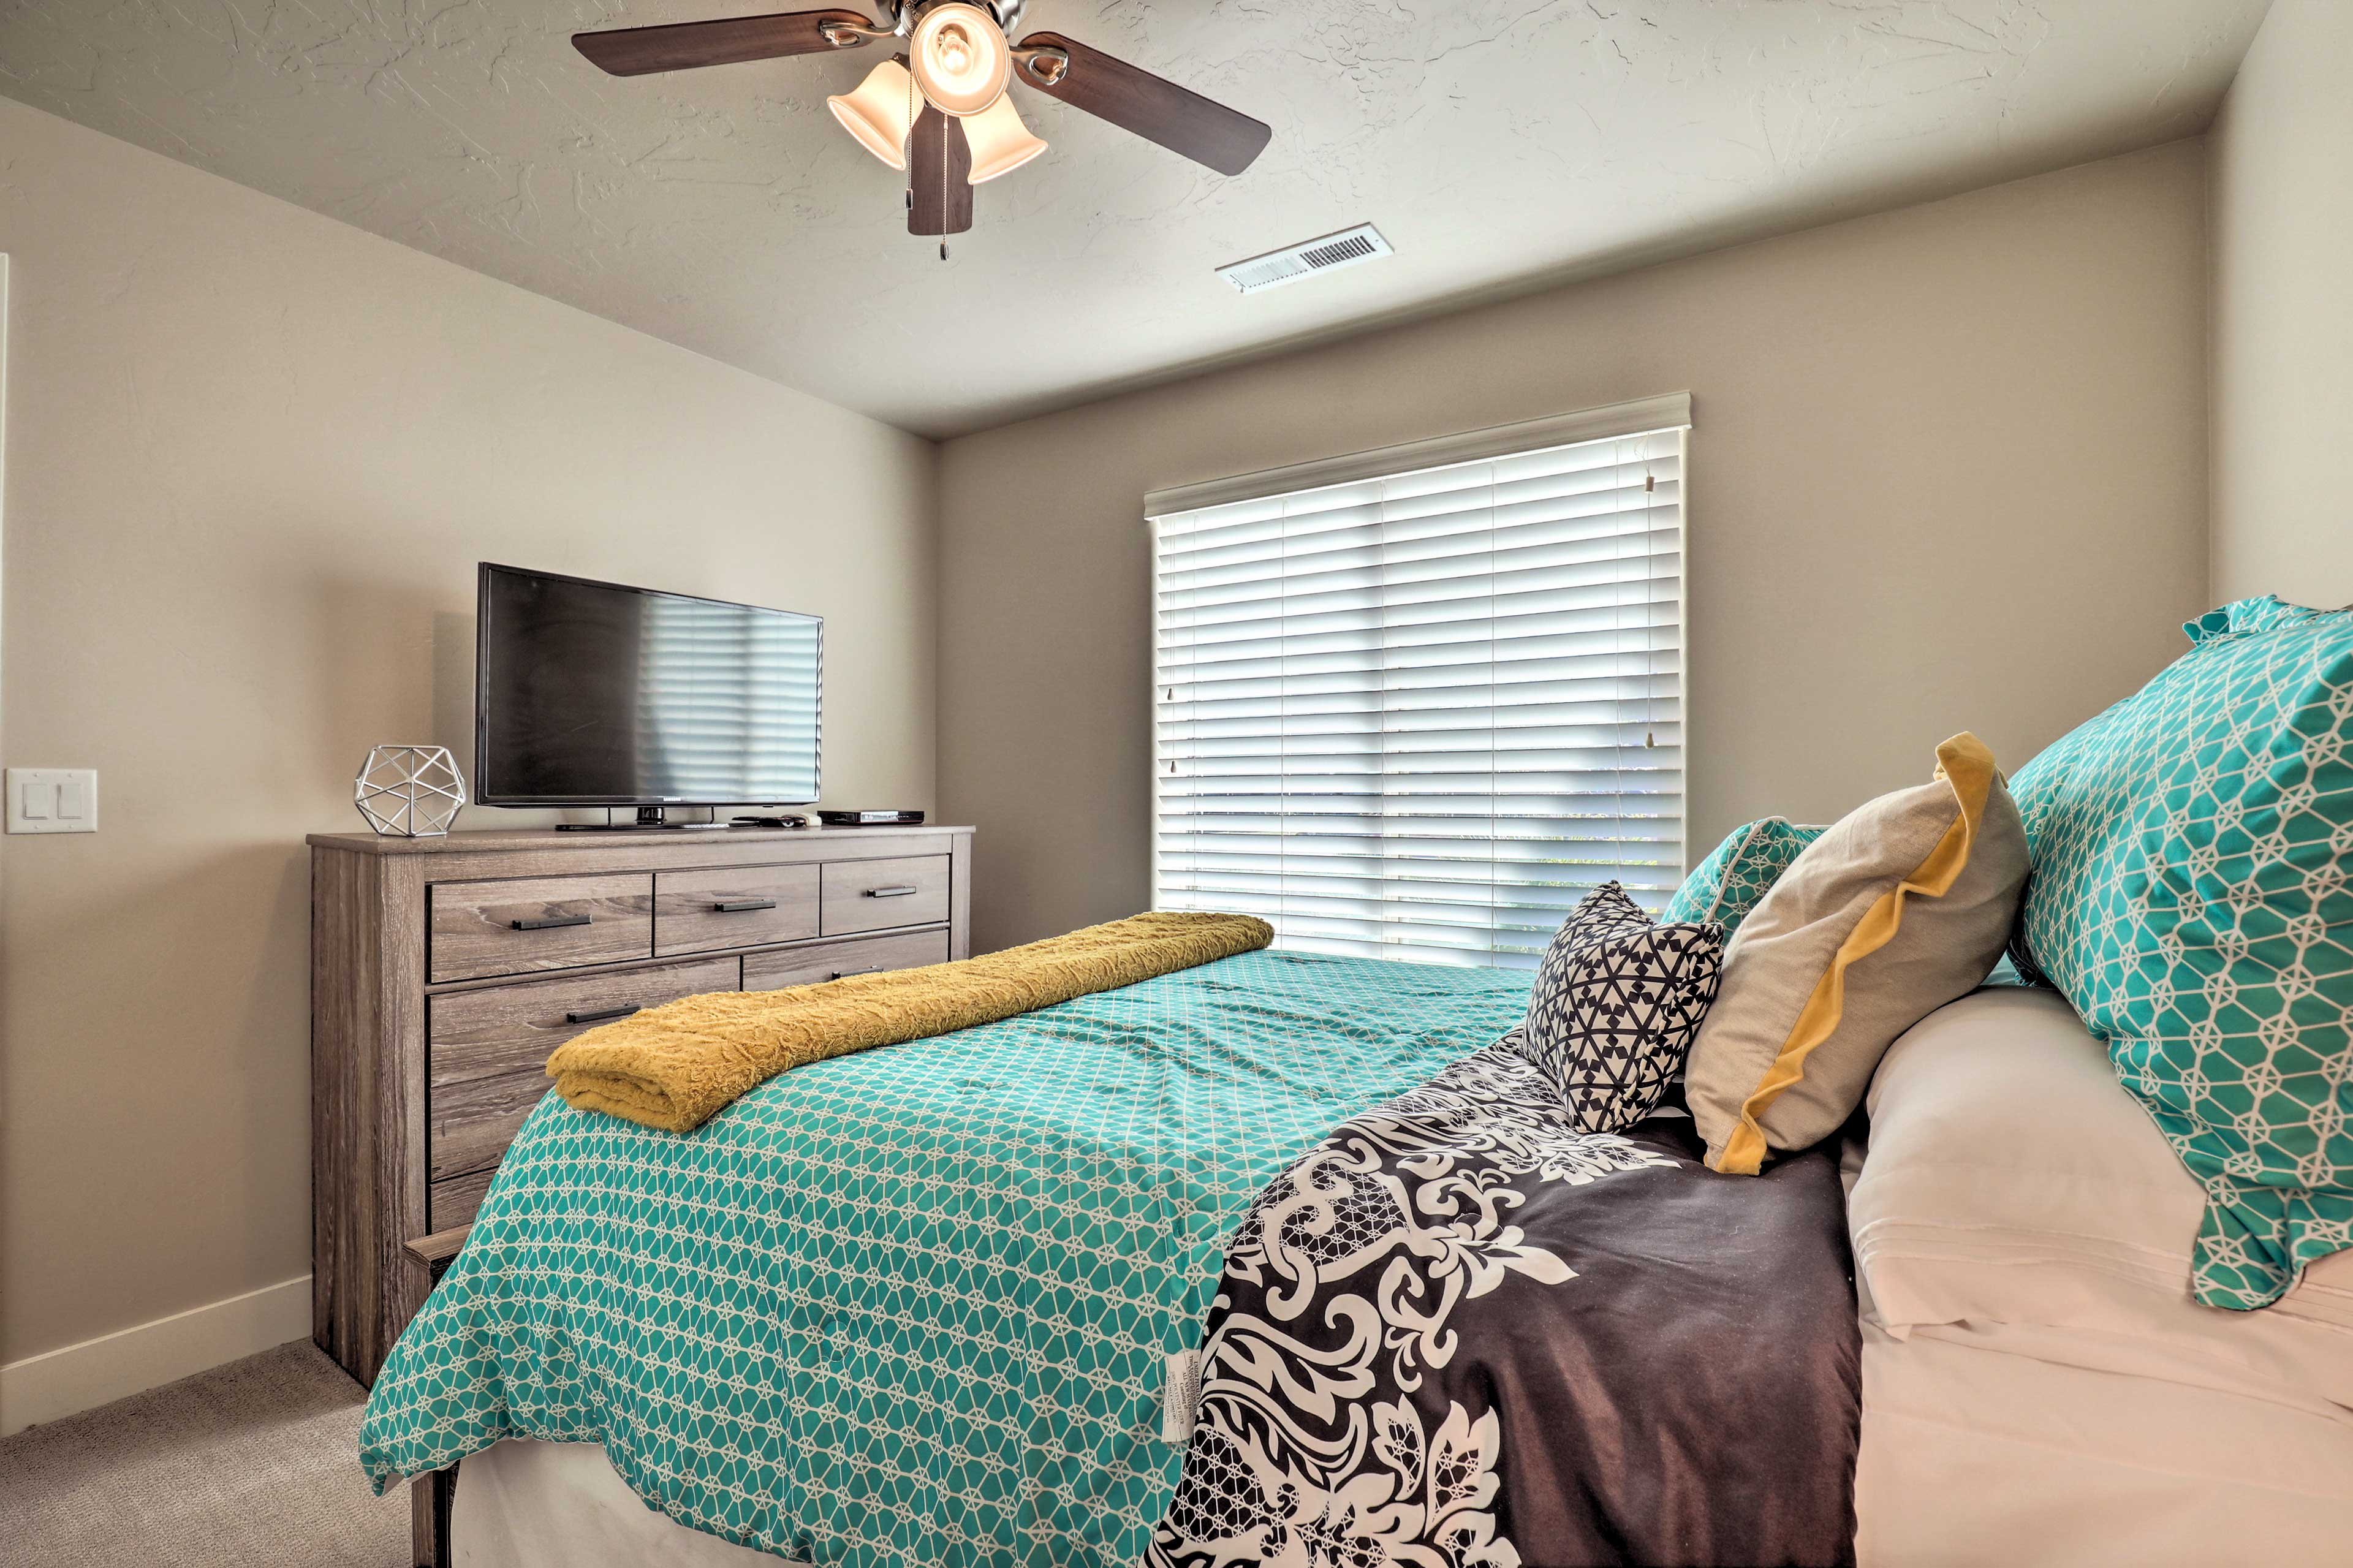 A fourth room hosts a queen bed.